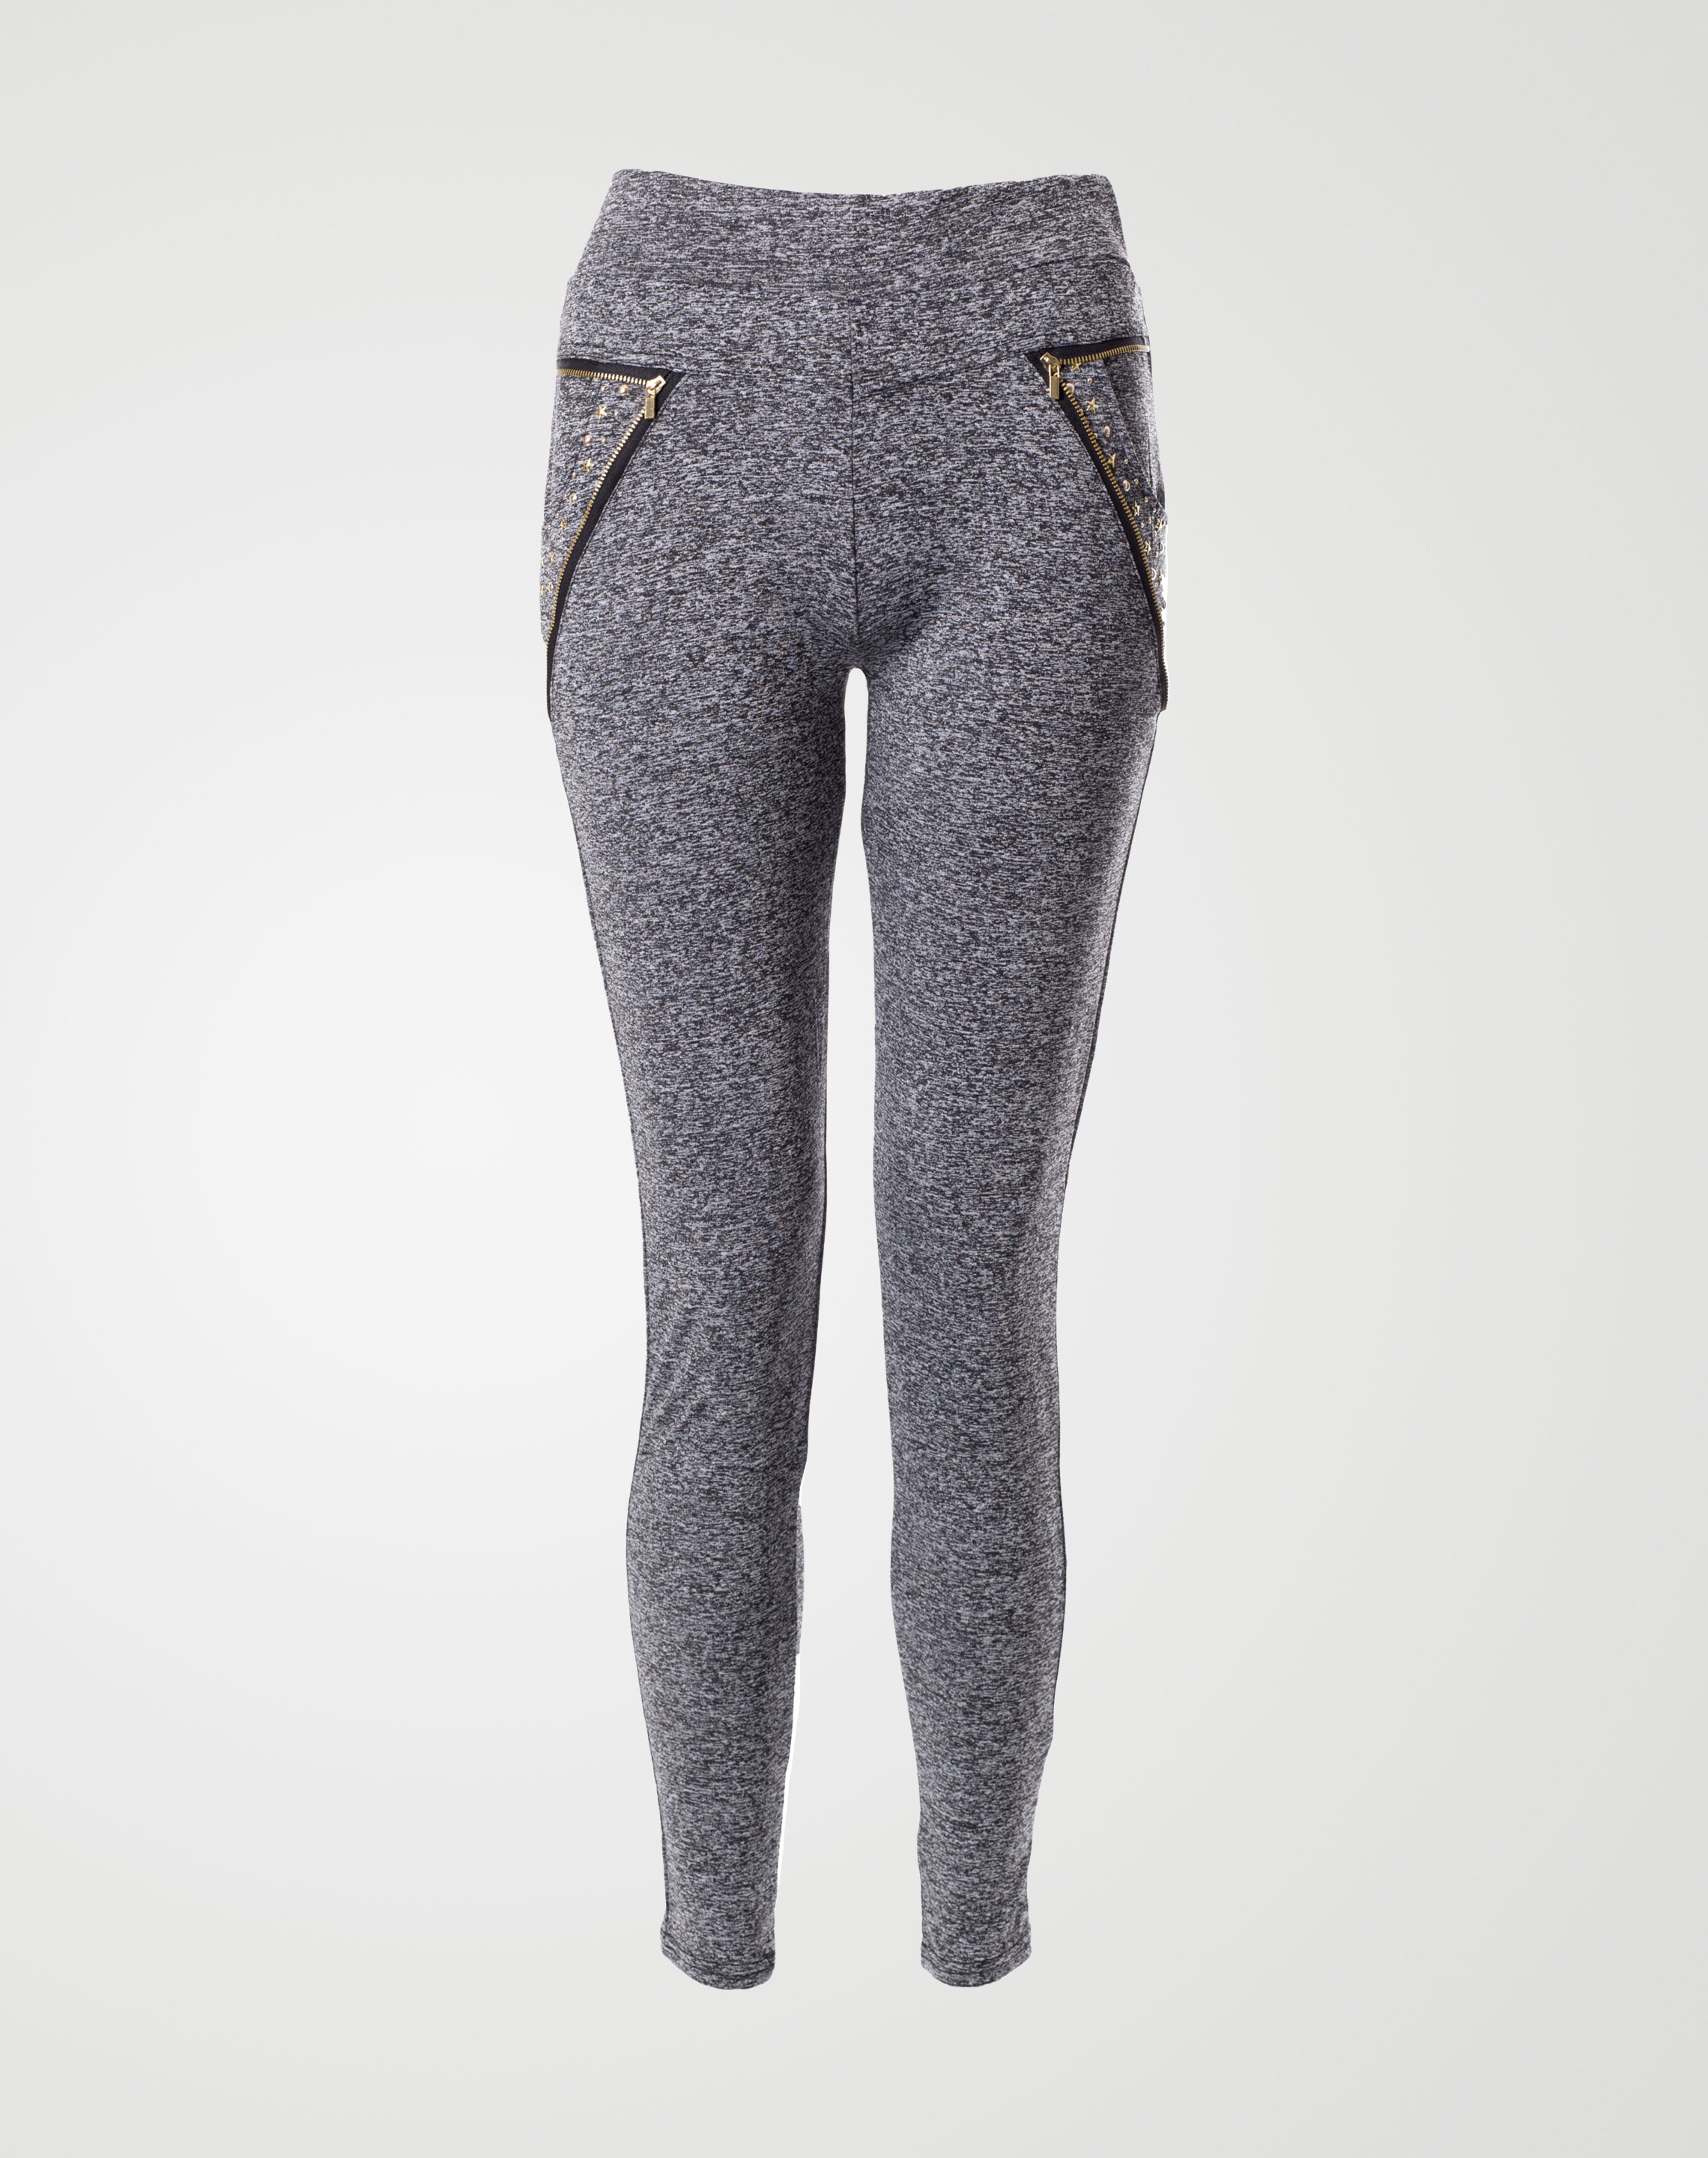 Image 1 of Womens Waist Side Zips Leggings 2046 Color Charcoal and sizes S-M, M-L, XL-2XL from Noroze